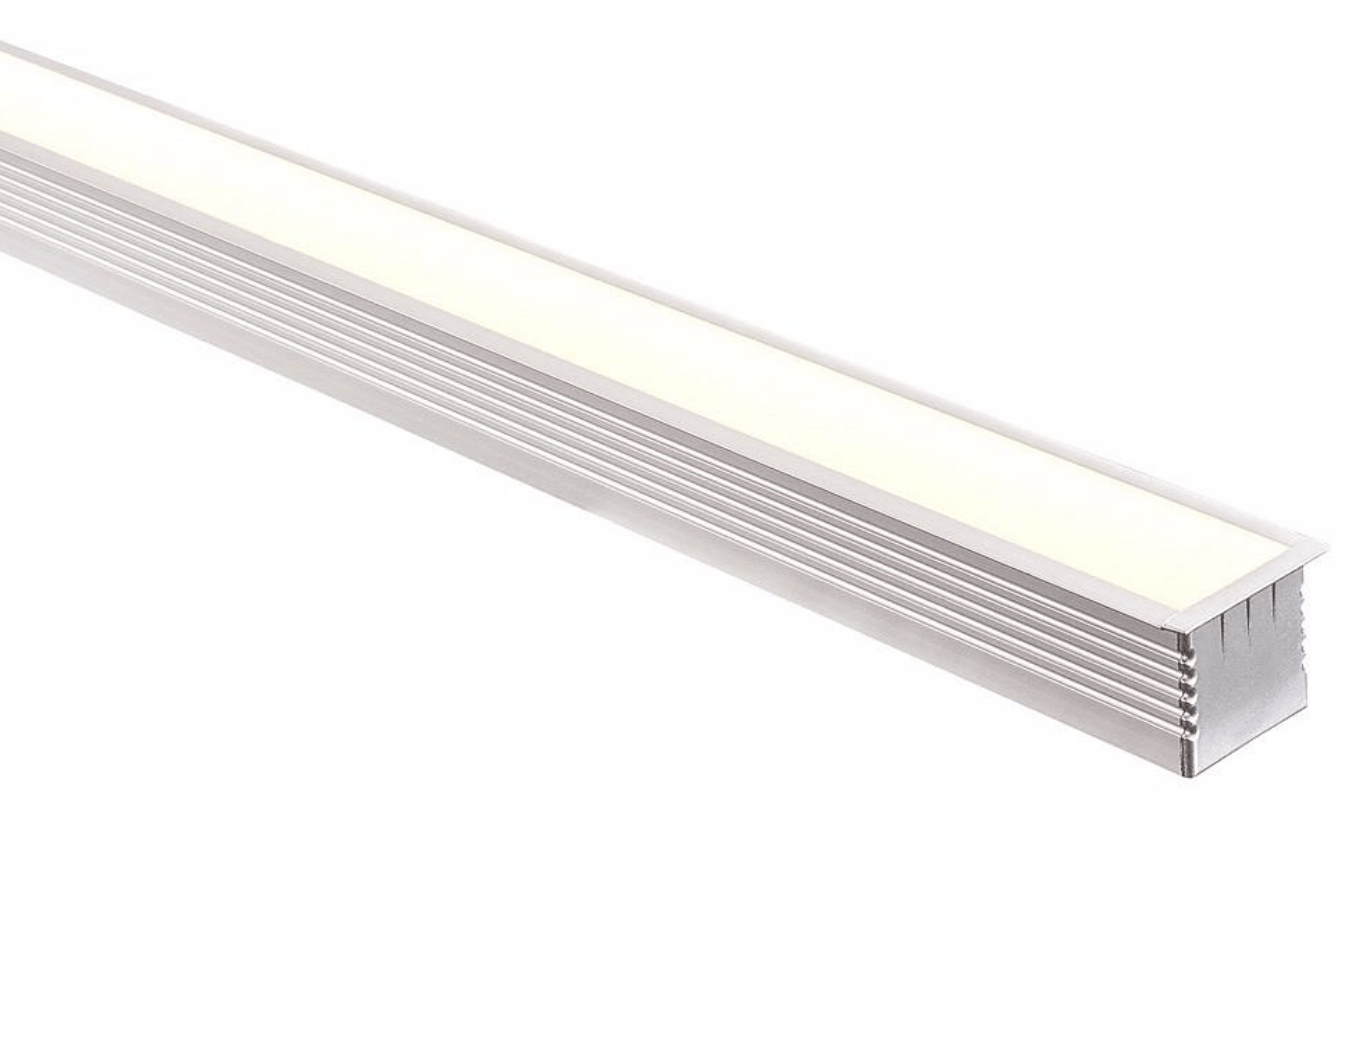 Profiles Recessed Profile - Large Square Winged - HV9695-4435